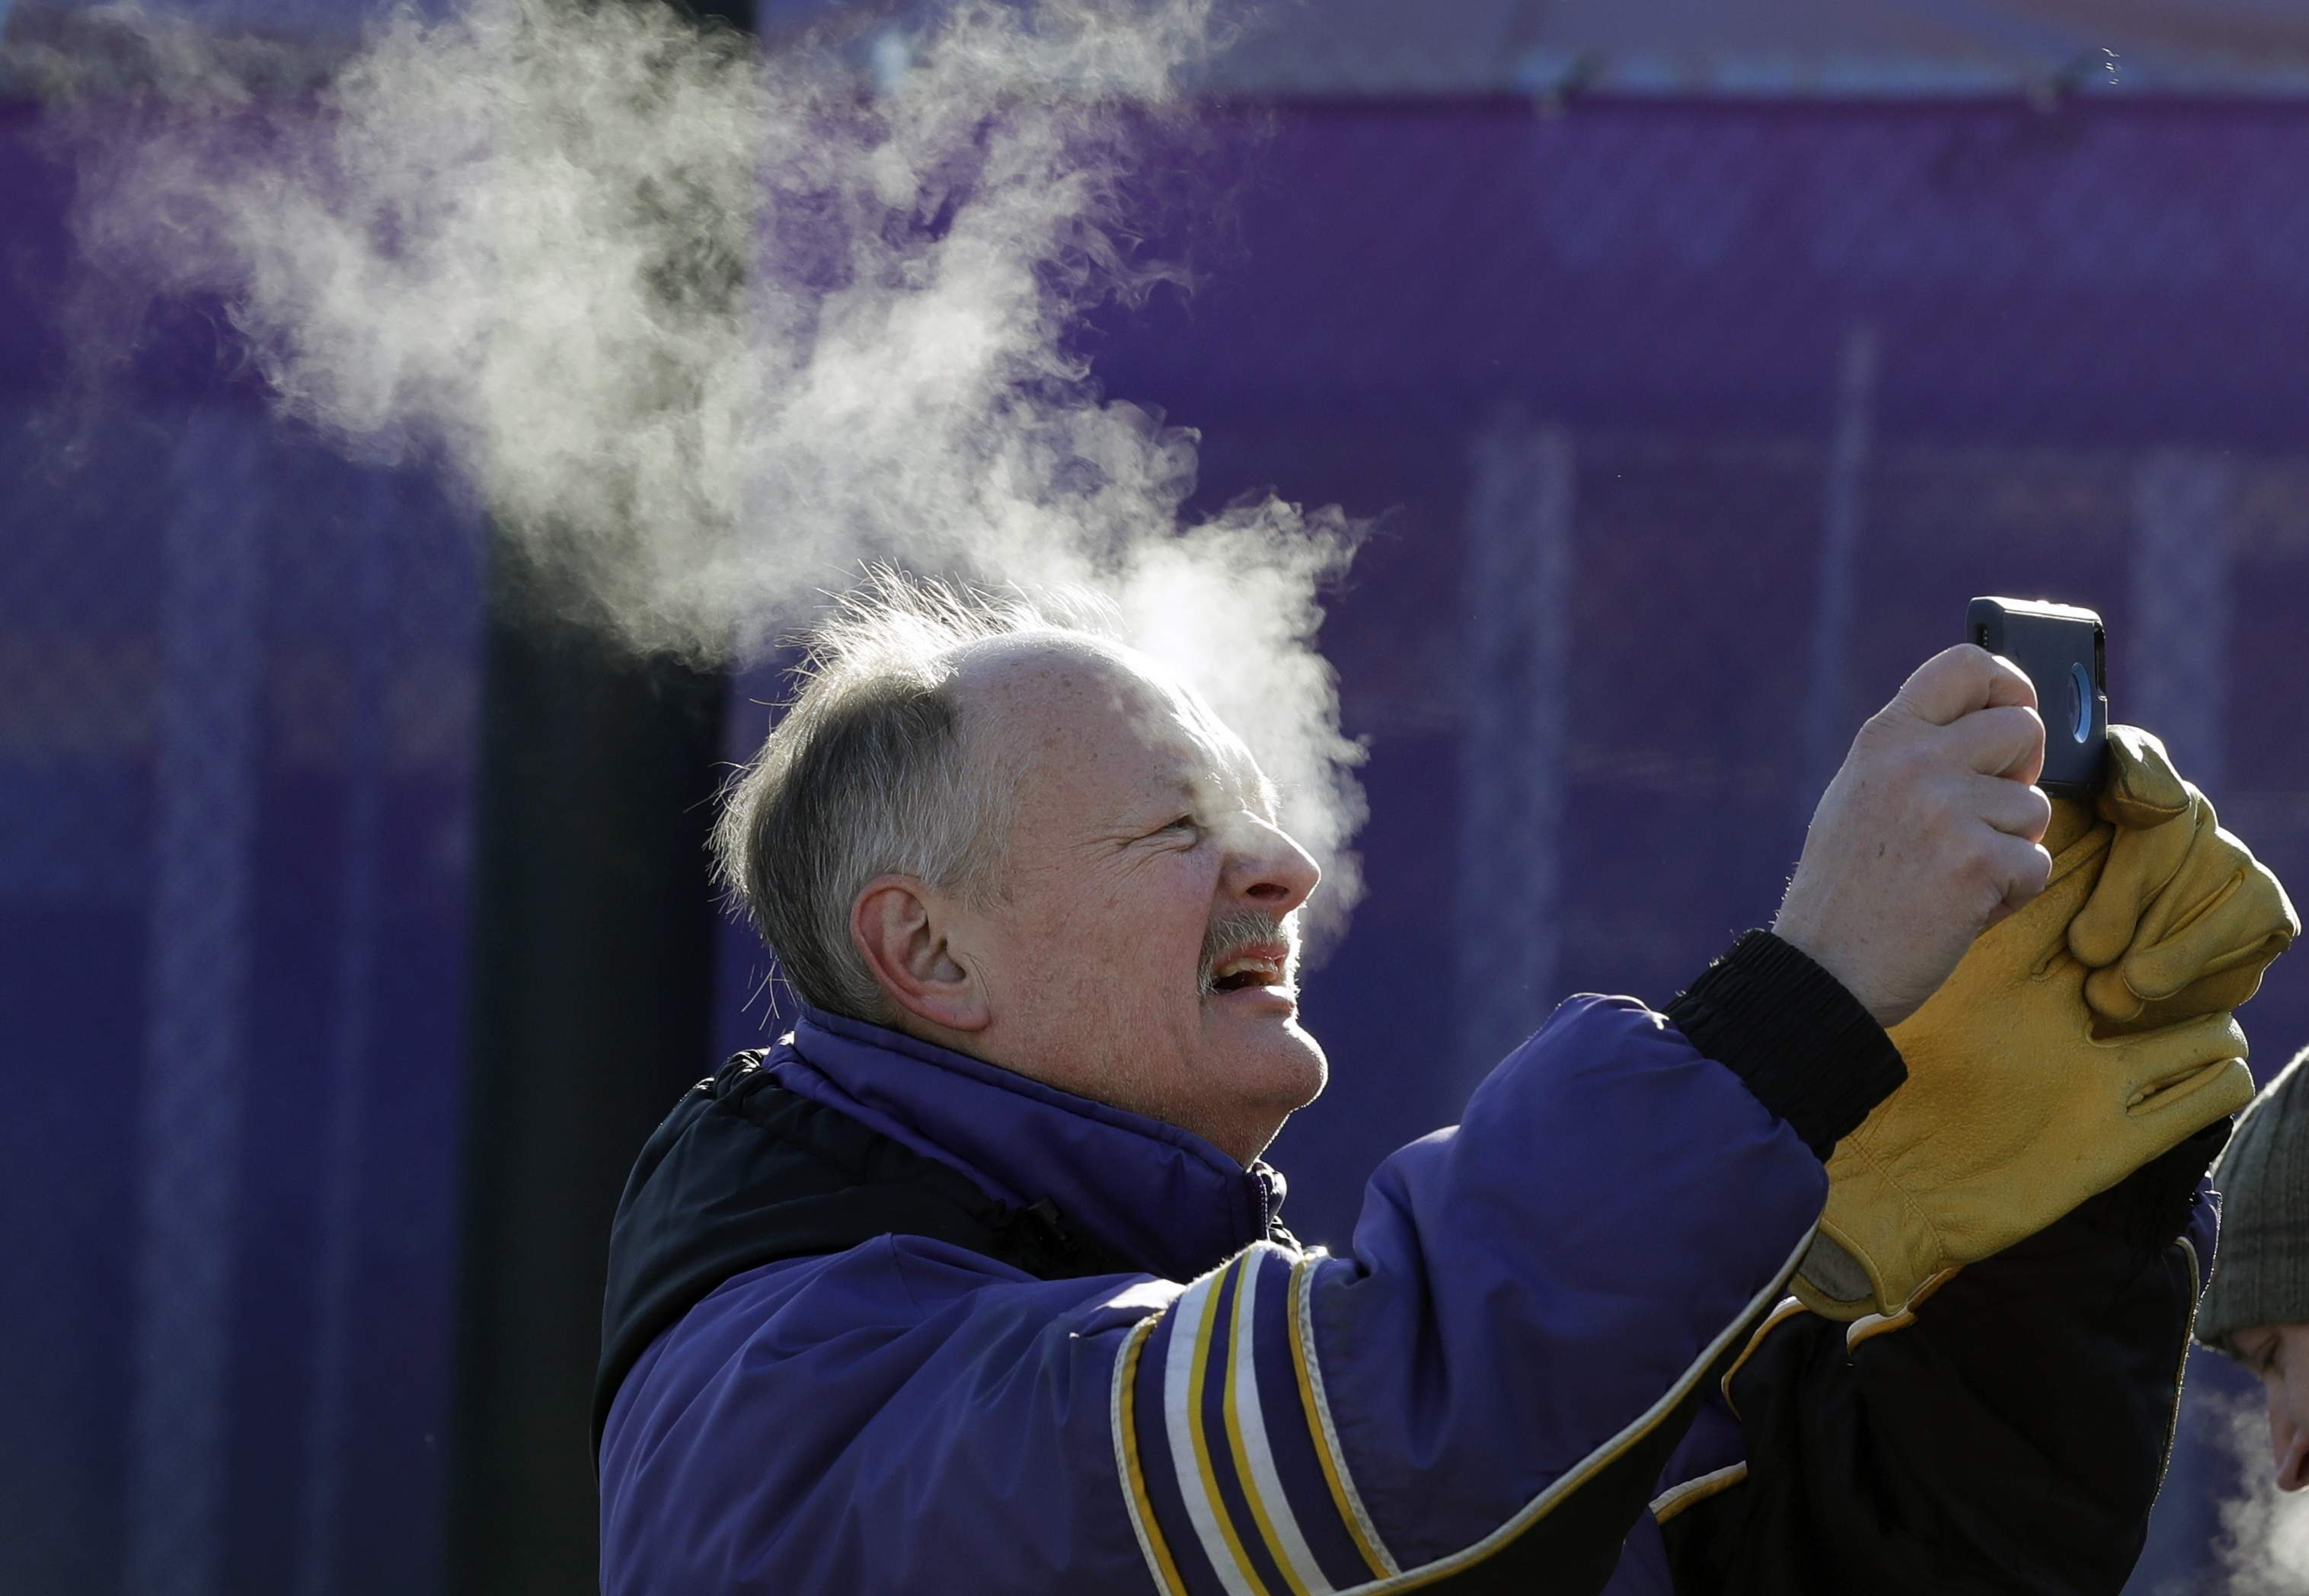 A fan braves cold temperatures as he takes a selfie outside U.S. Bank Stadium for the NFL Super Bowl 52 football game between the Philadelphia Eagles and the New England Patriots Sunday, Feb. 4, 2018, in Minneapolis. (AP Photo/Eric Gay)